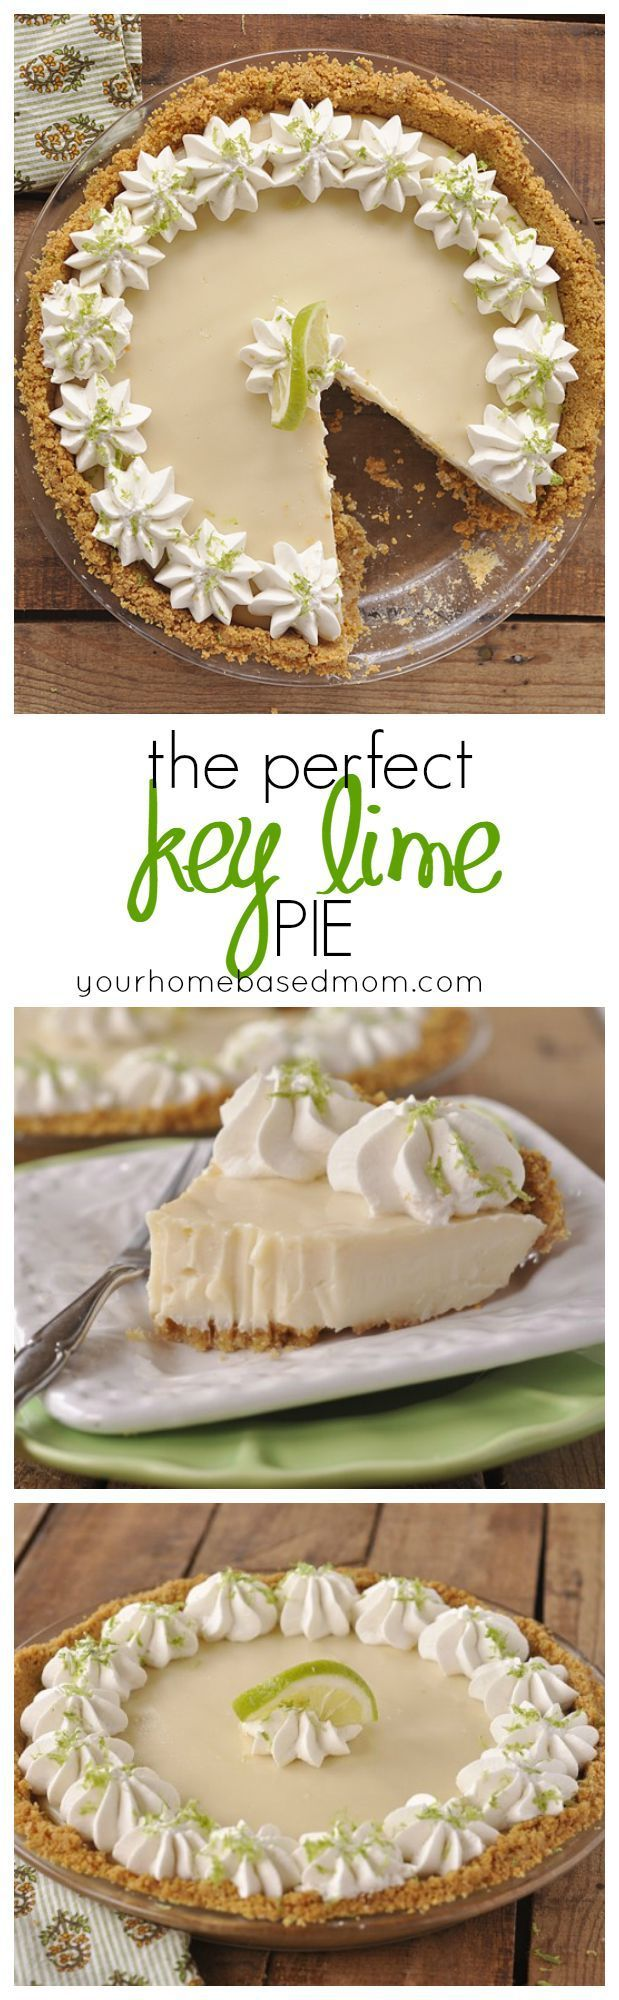 No fooling! This truly is the PERFECT Key Lime Pie. I dare you to try it and prove me wrong!!